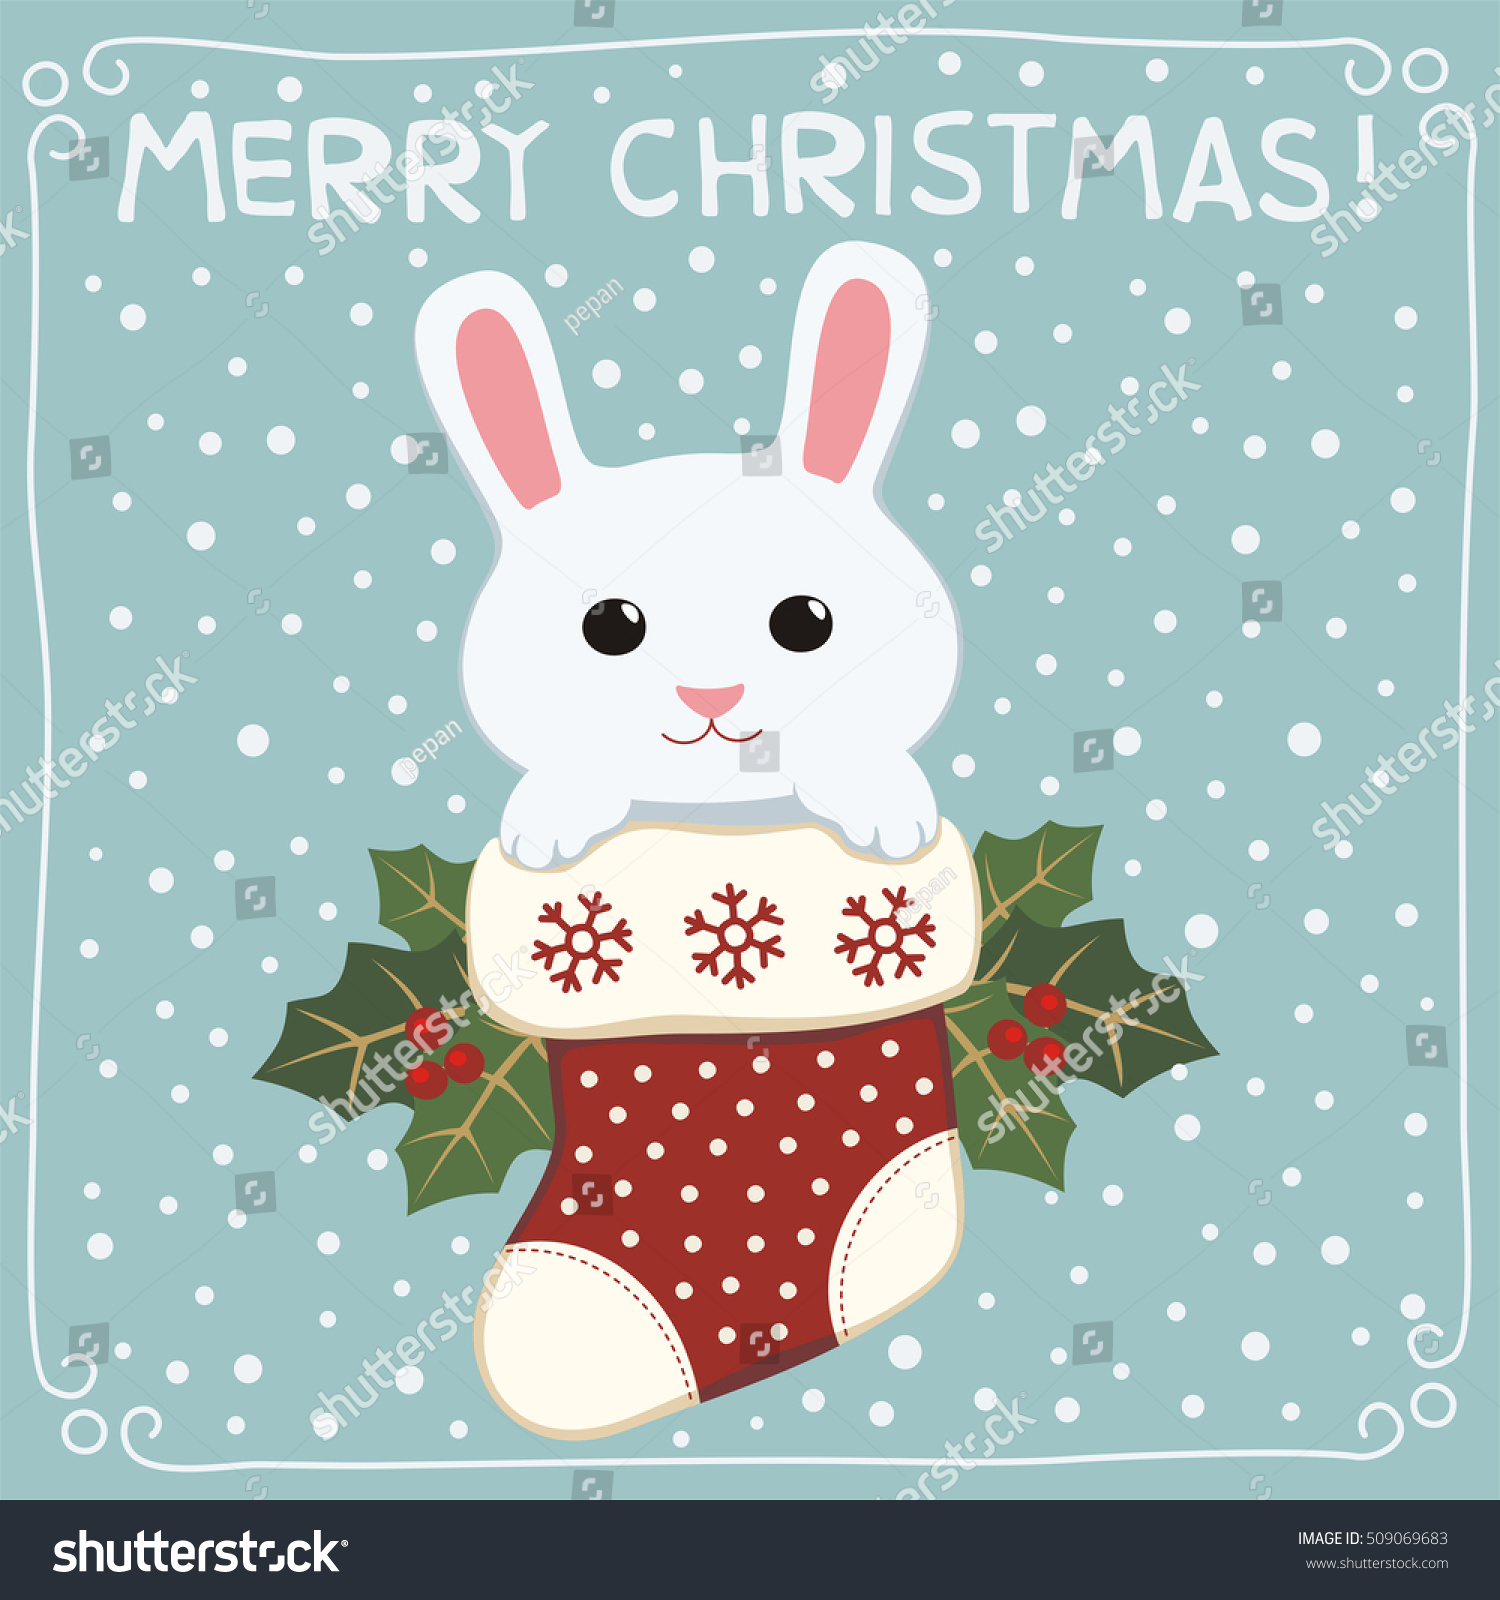 merry christmas cute bunny rabbit in stocking greeting card